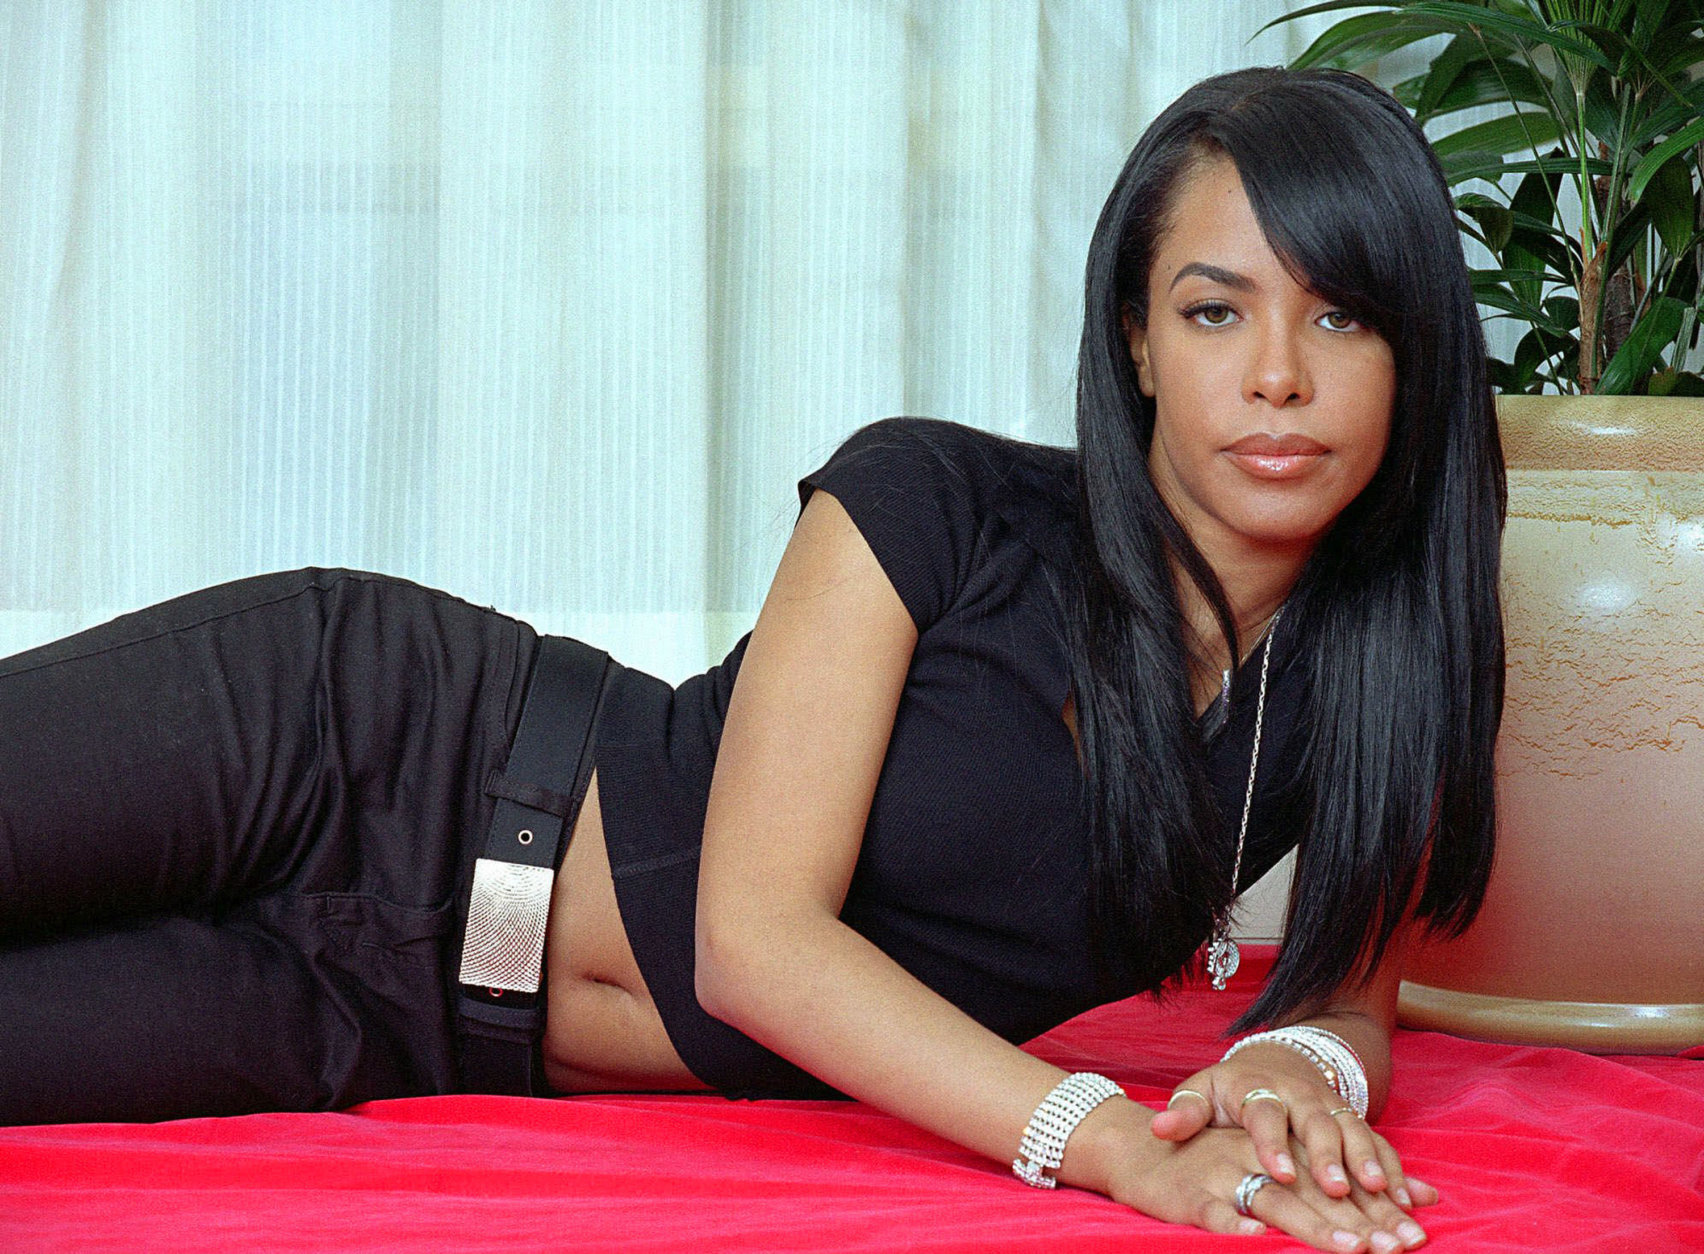 """FILE - This May 9, 2001 file photo shows R&B singer and actress Aaliyah posing for a photo in New York. Recording artist Drake, a huge Aaliyah fan, has announced that he is working on a posthumous album of Aaliyah music, and he's already released the song """"Enough Said"""" featuring himself and the singer, who was killed in a plane crash in 2001. (AP Photo/Jim Cooper, file)"""